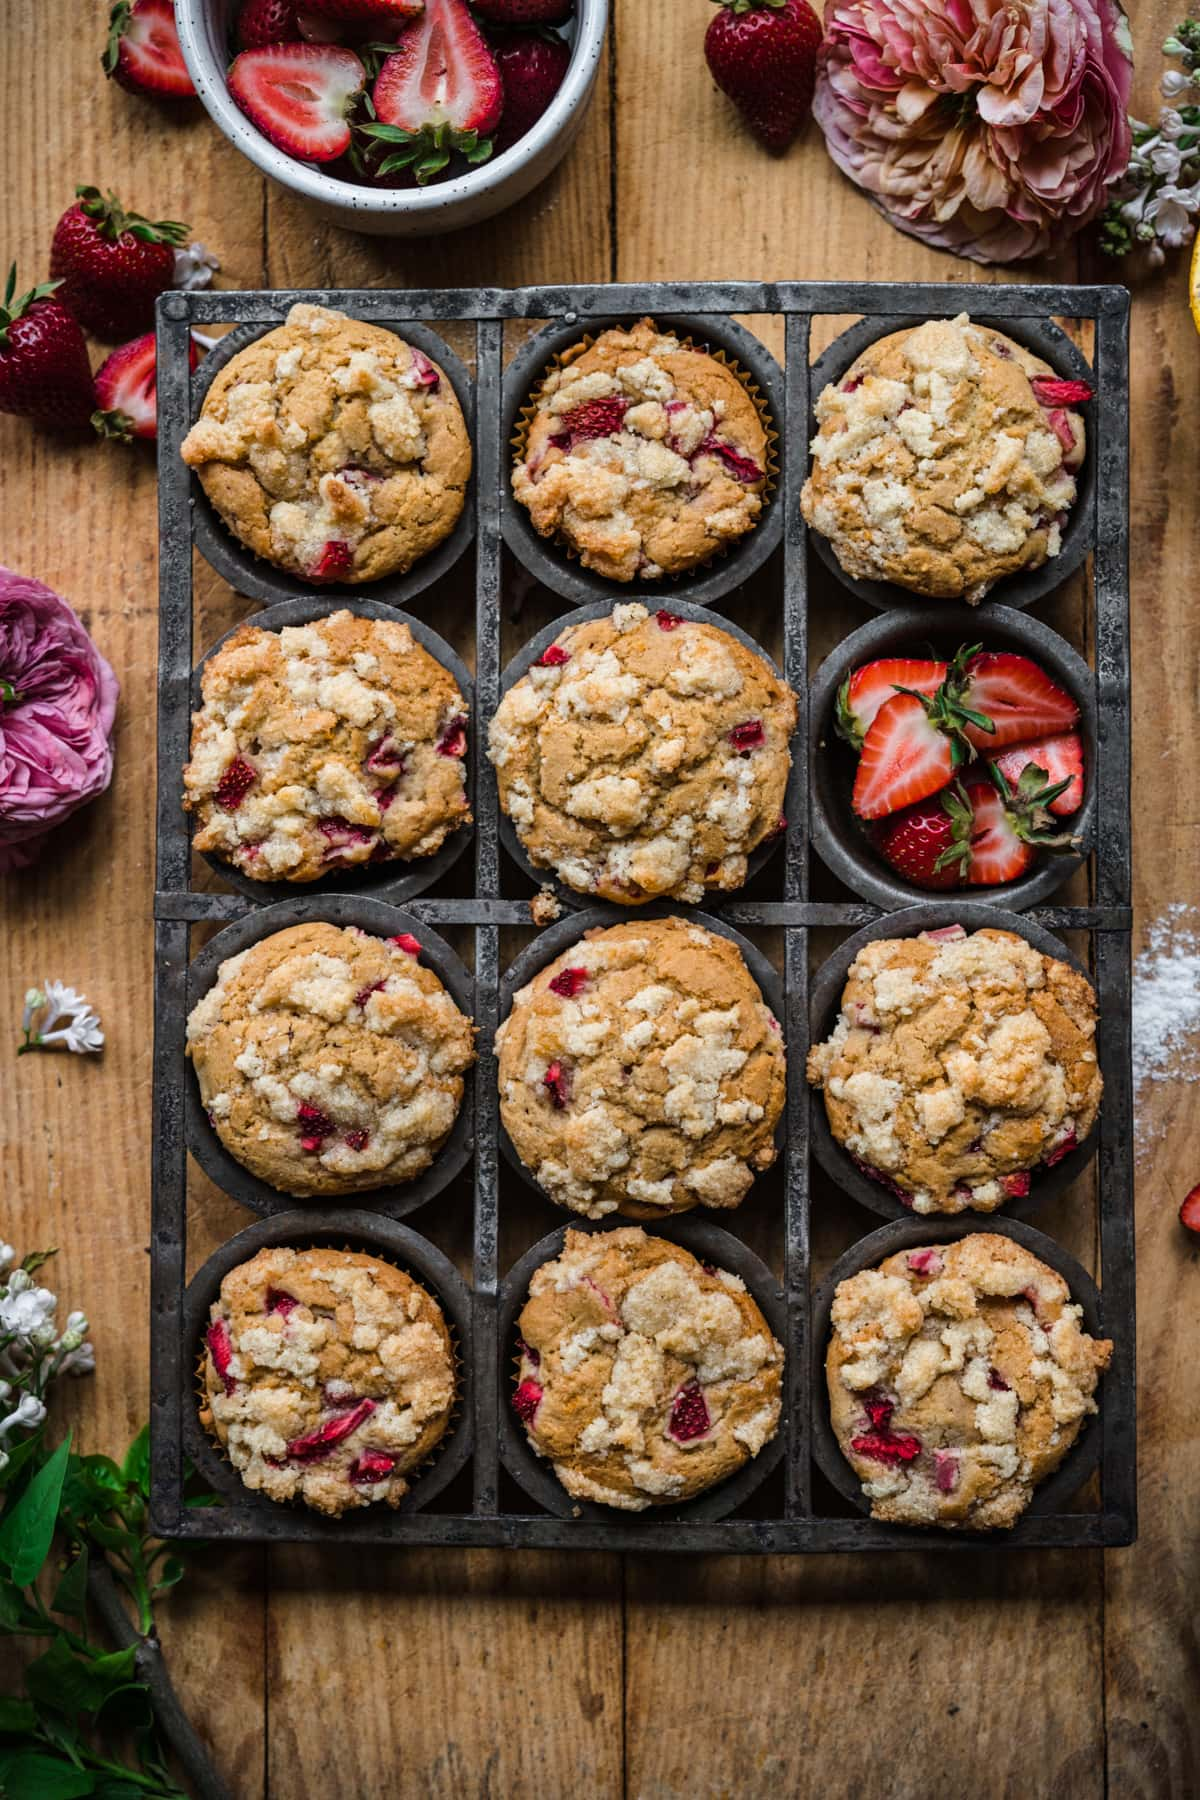 overhead view of vegan strawberry muffins with almond streusel in antique muffin tin on wood surface.